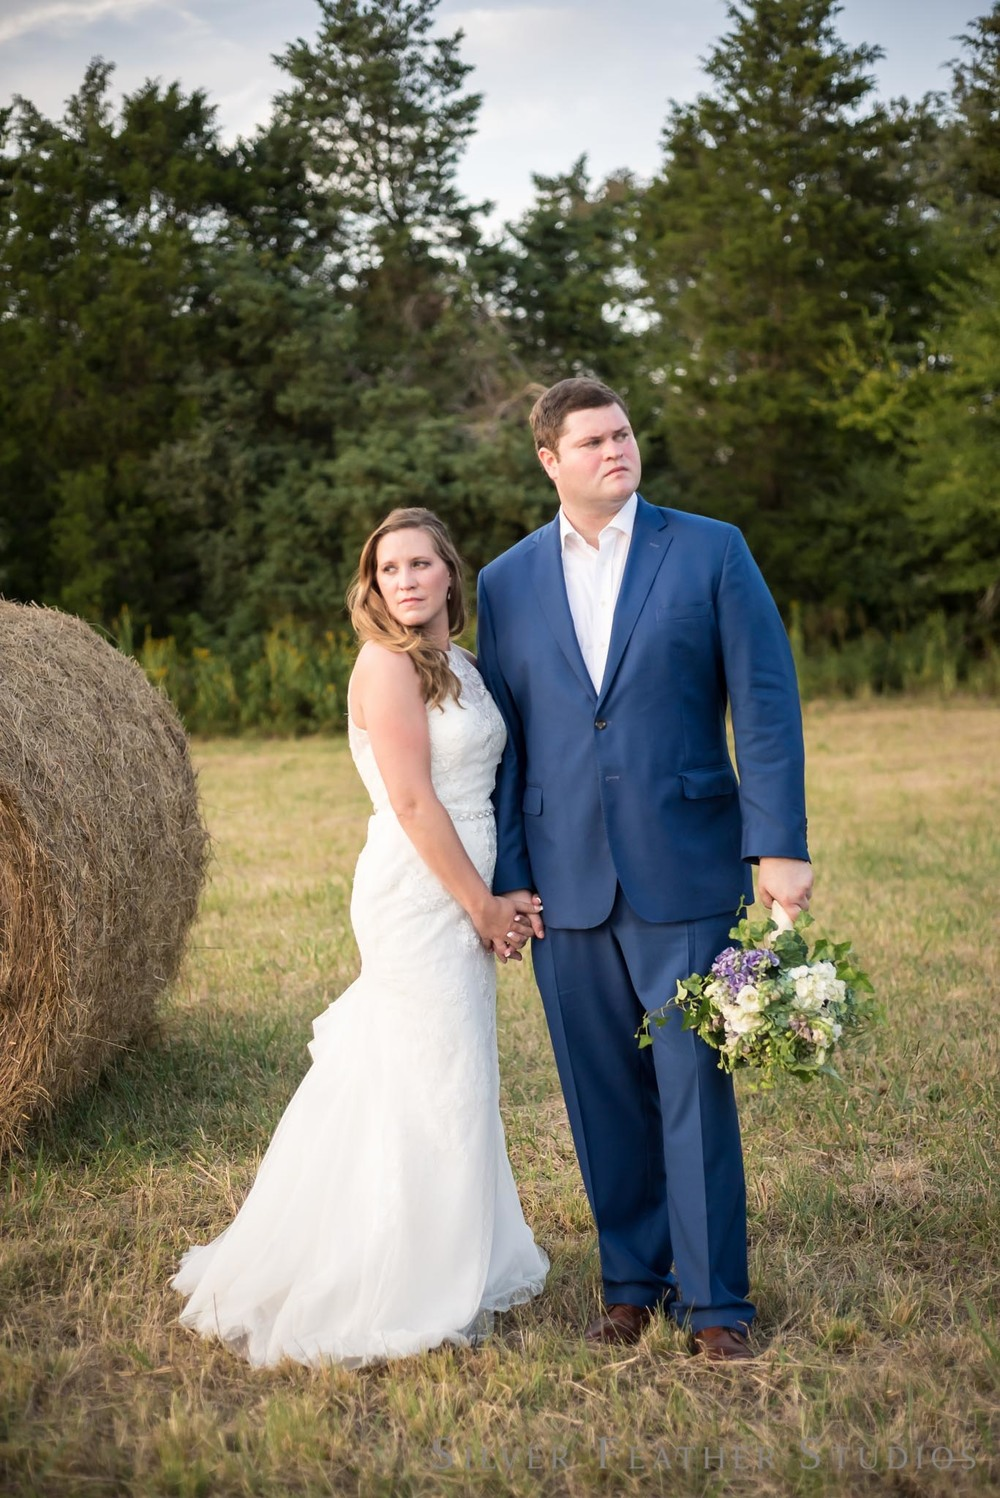 david and erin at their wedding at Seven Cedars Farm. Photography by Burlington wedding photographer, Silver Feather Studios